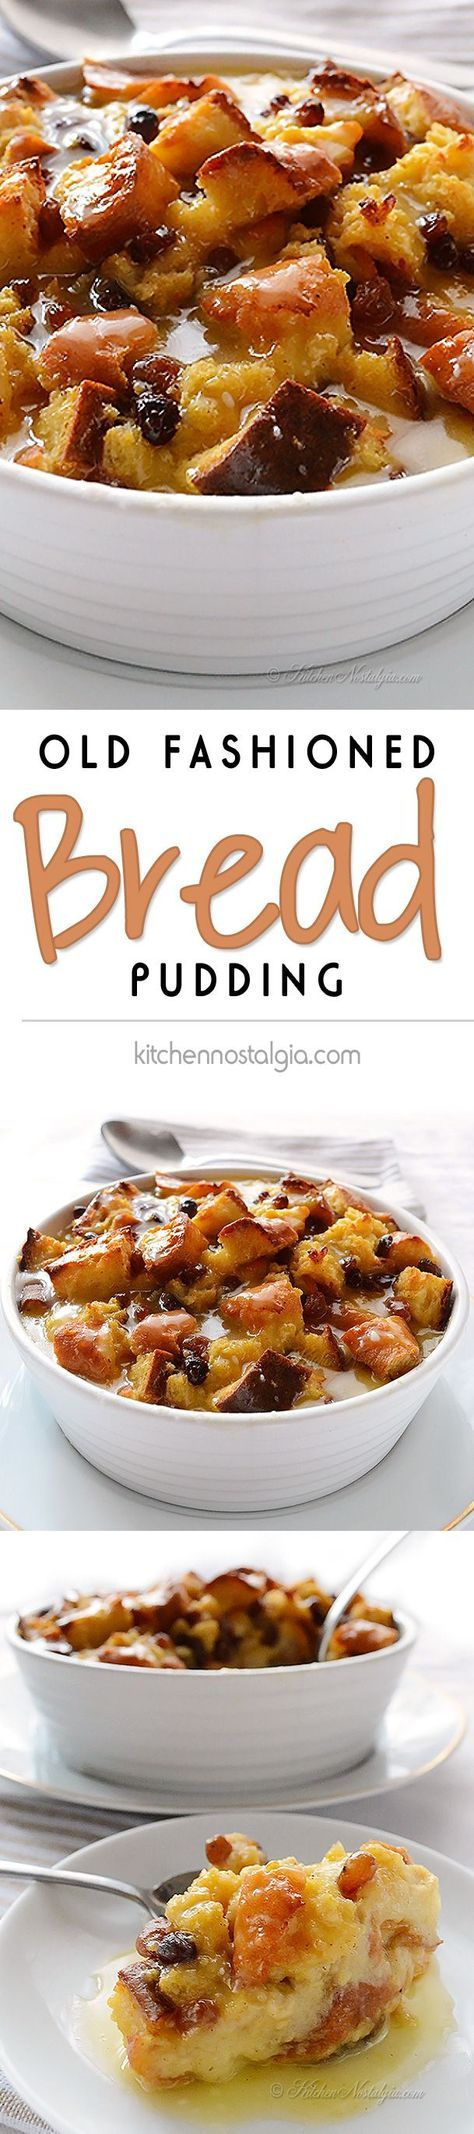 Old Fashioned Bread Pudding - taste of the good old days - recipe from kitchennostalgia.com